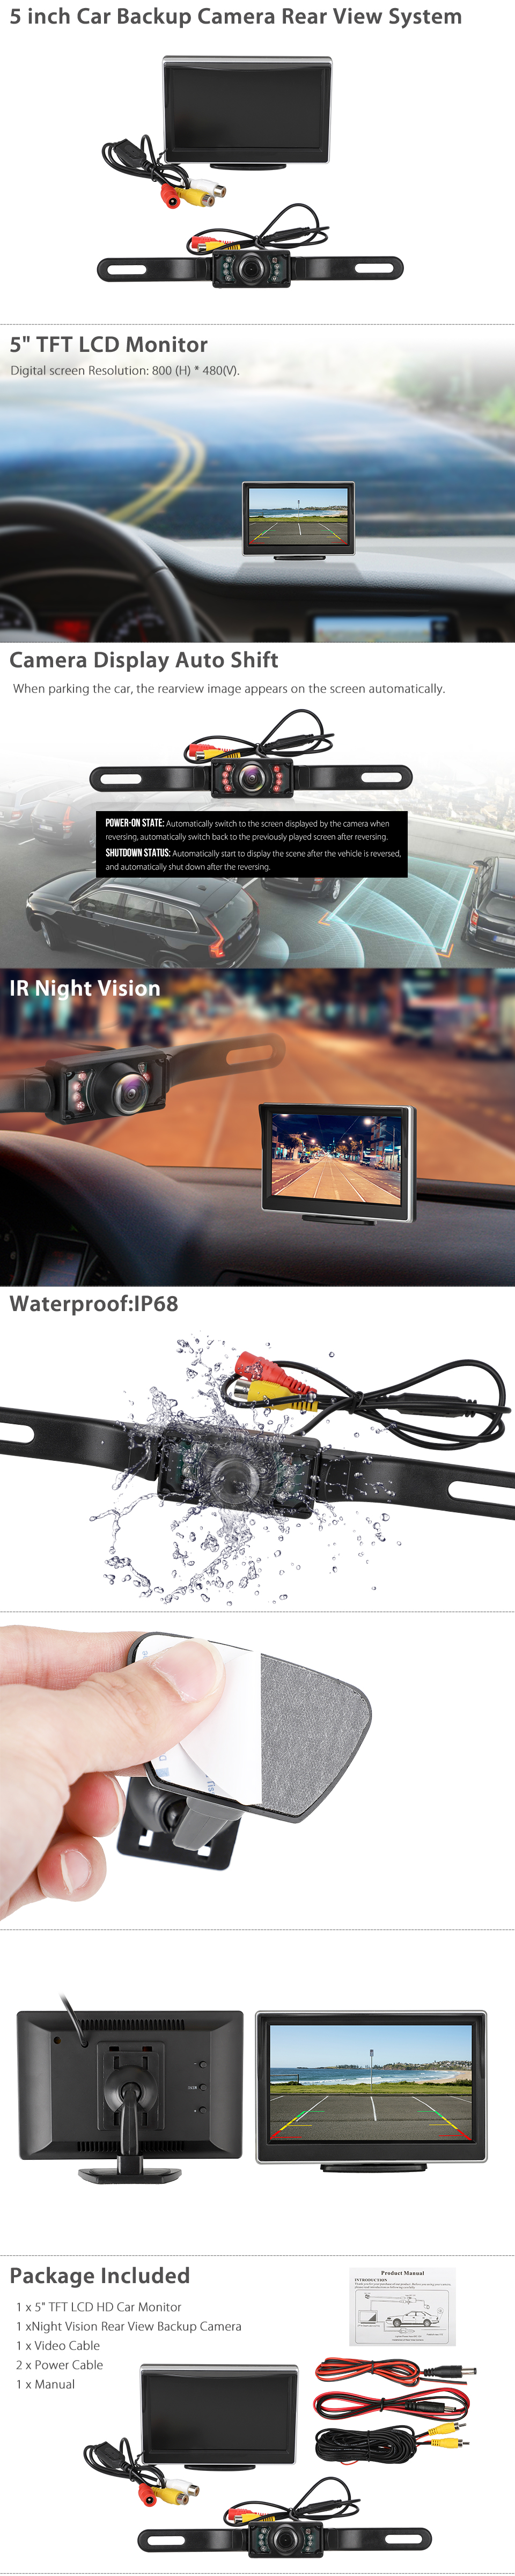 New 8 LED Car Rear View Camera Car Front//Side View Backup Rear View IR Night Vision Camera with Parking Line DC 12V Universal Carvicto